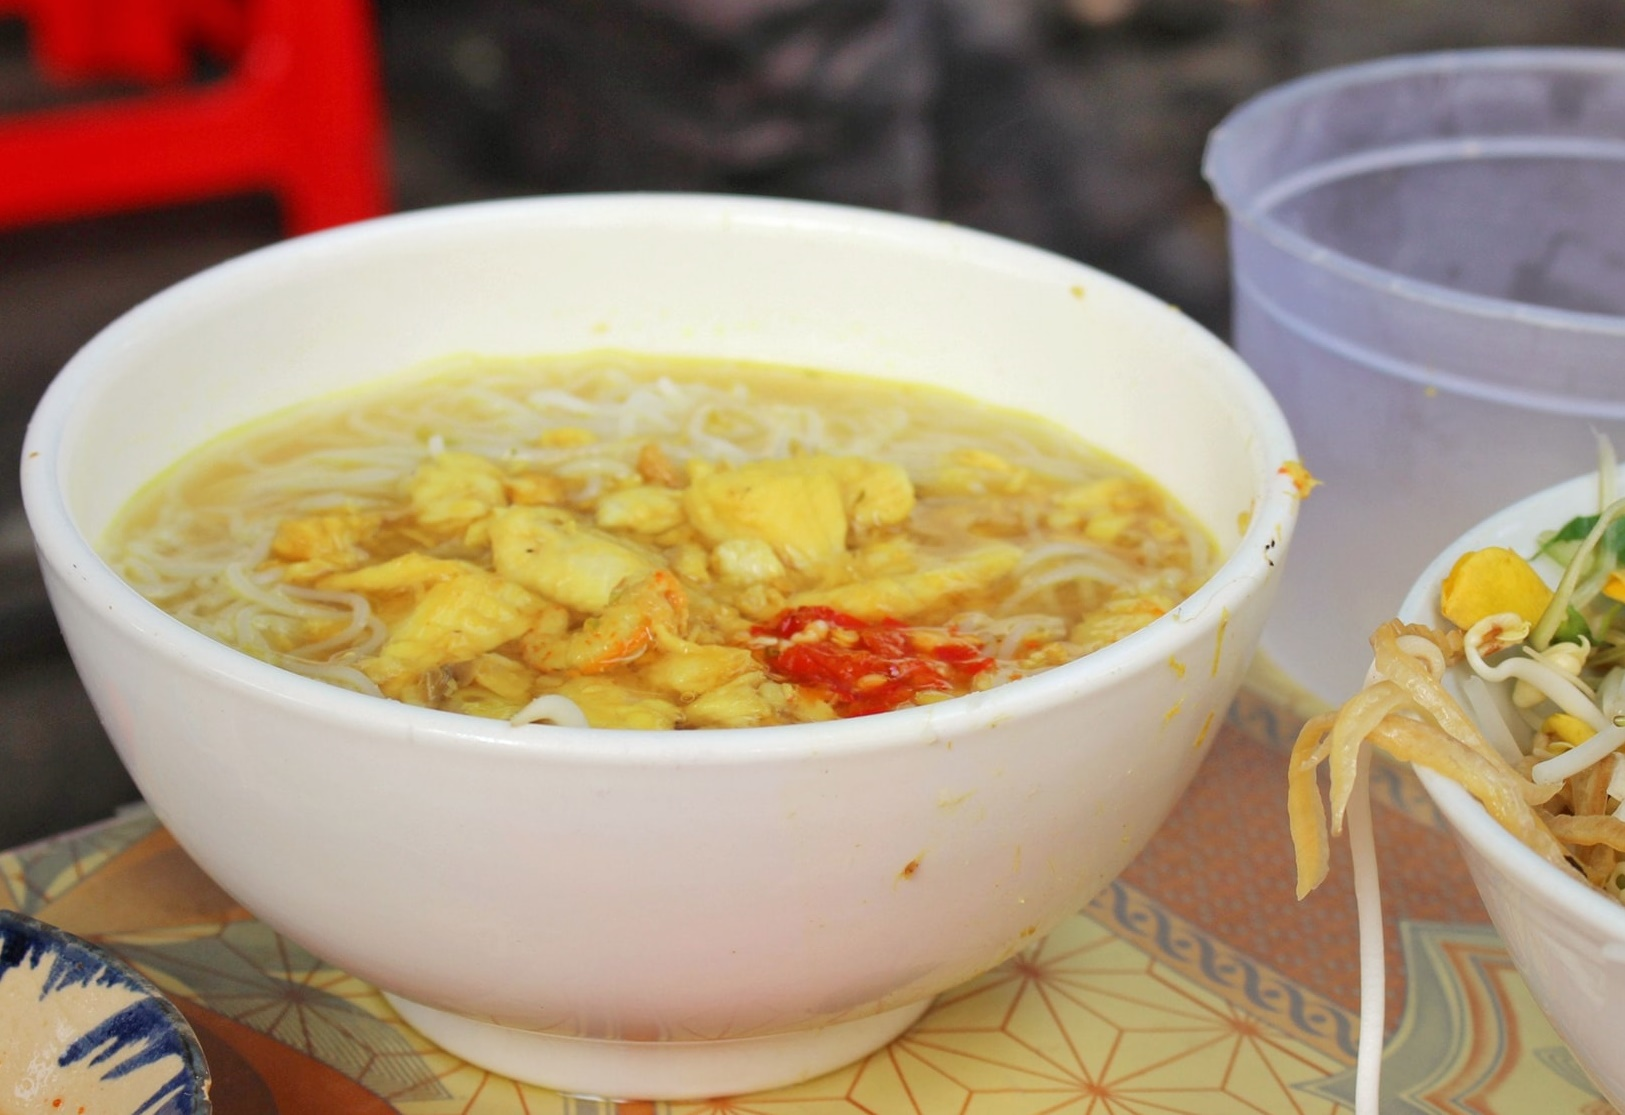 The success of the dish lies in the sweet broth that is made from fermented carp, shrimp paste, livestock bones and other ingredients such as auttum crosscus and crushed turmeric. Dont forget to enjoy the dish with some vegetables such as water spinach, banana flower, bean sprouts, dien dien or sesban leaves, accopanied with a cup of tamarind sauce. A bolw of fish noodle soup at Ms.Les stall costs VND15,000 ($0.65).